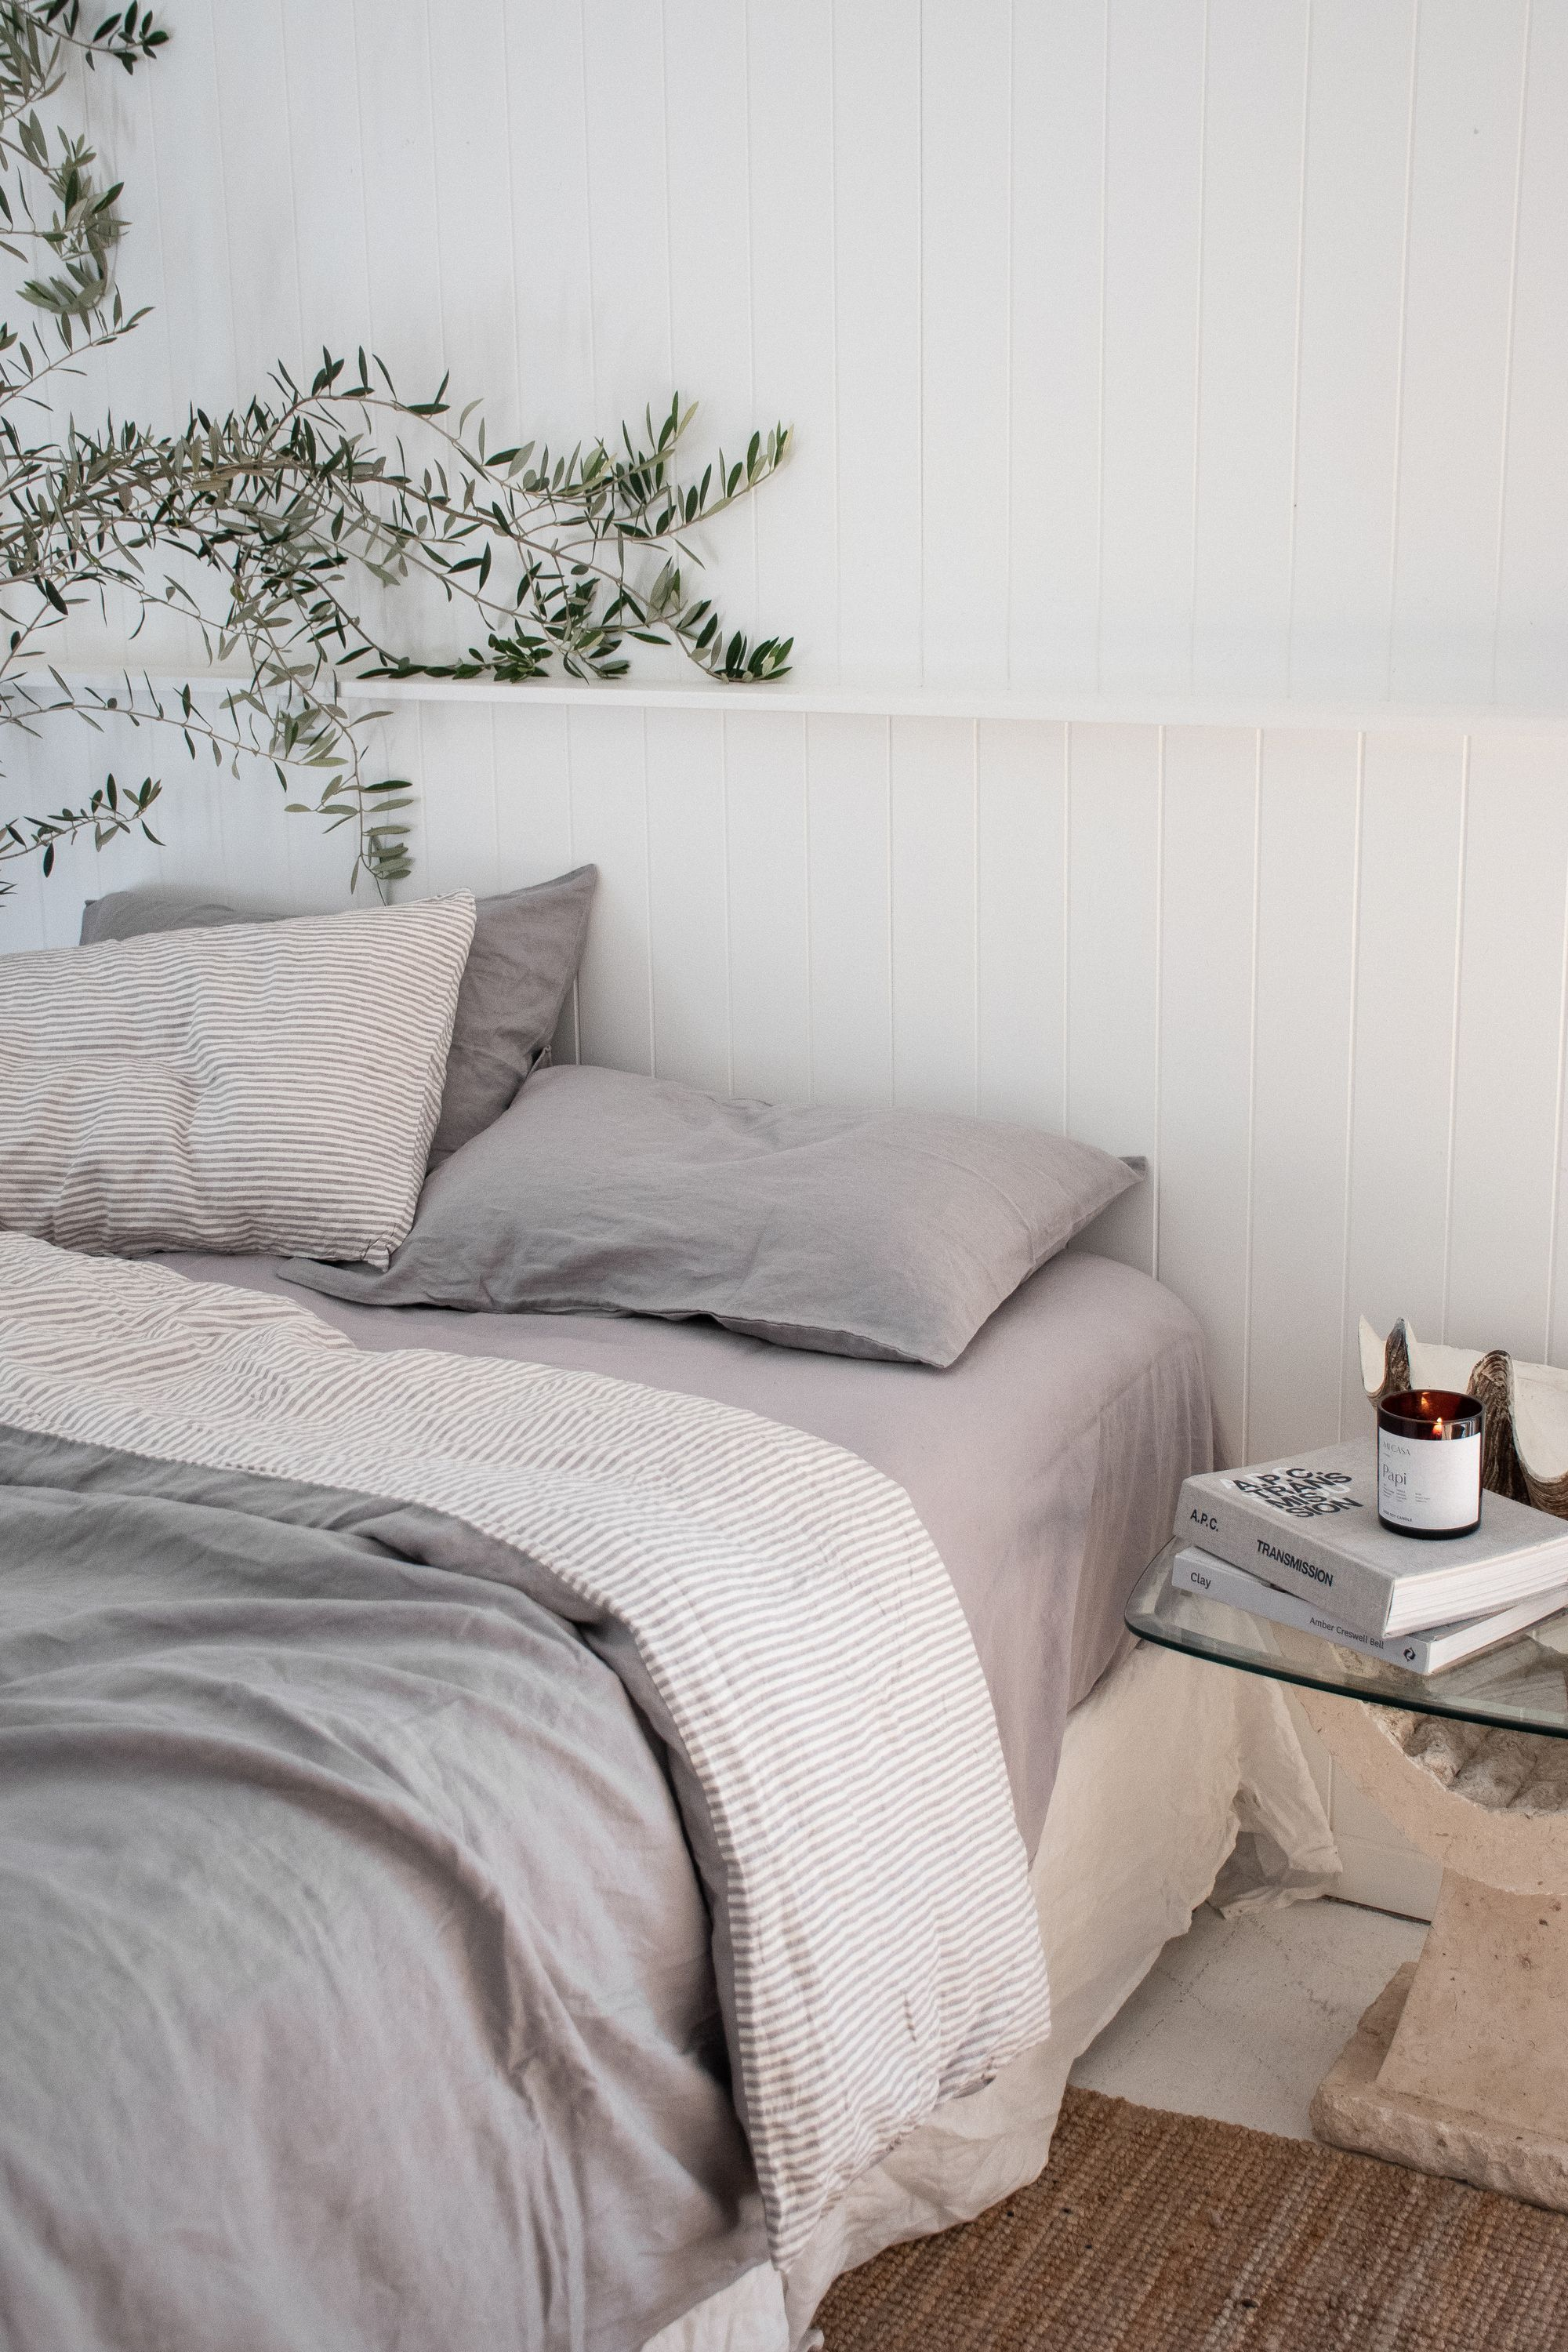 Pure Linen Sheets Bedding I Love Linen French Linen Bedding In Soft Grey Soft Grey Stripe Beautiful Ho Bed Linens Luxury Bed Linen Design Bed Styling